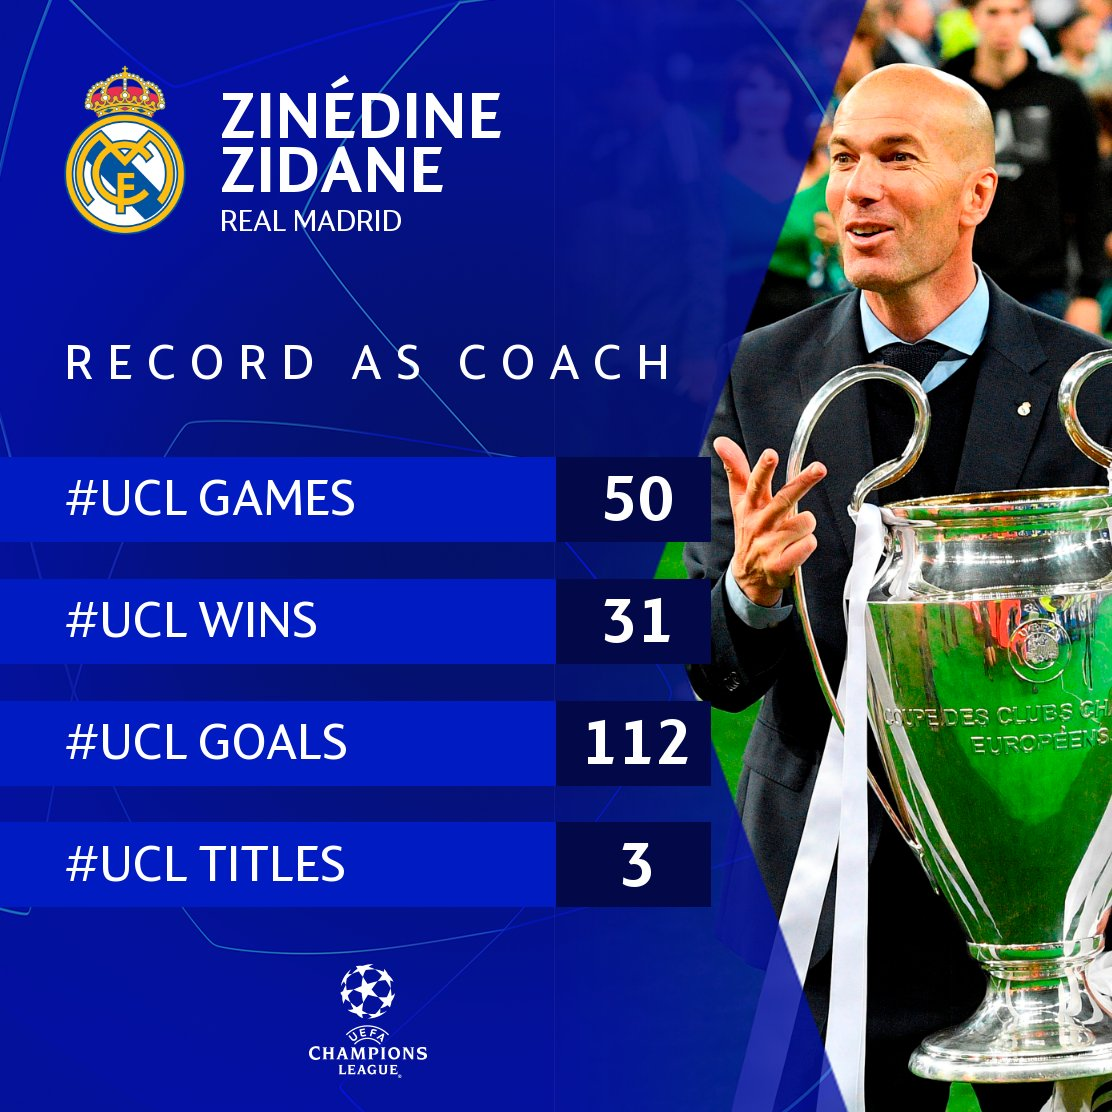 Zinedine Zidane Champions League Achievements